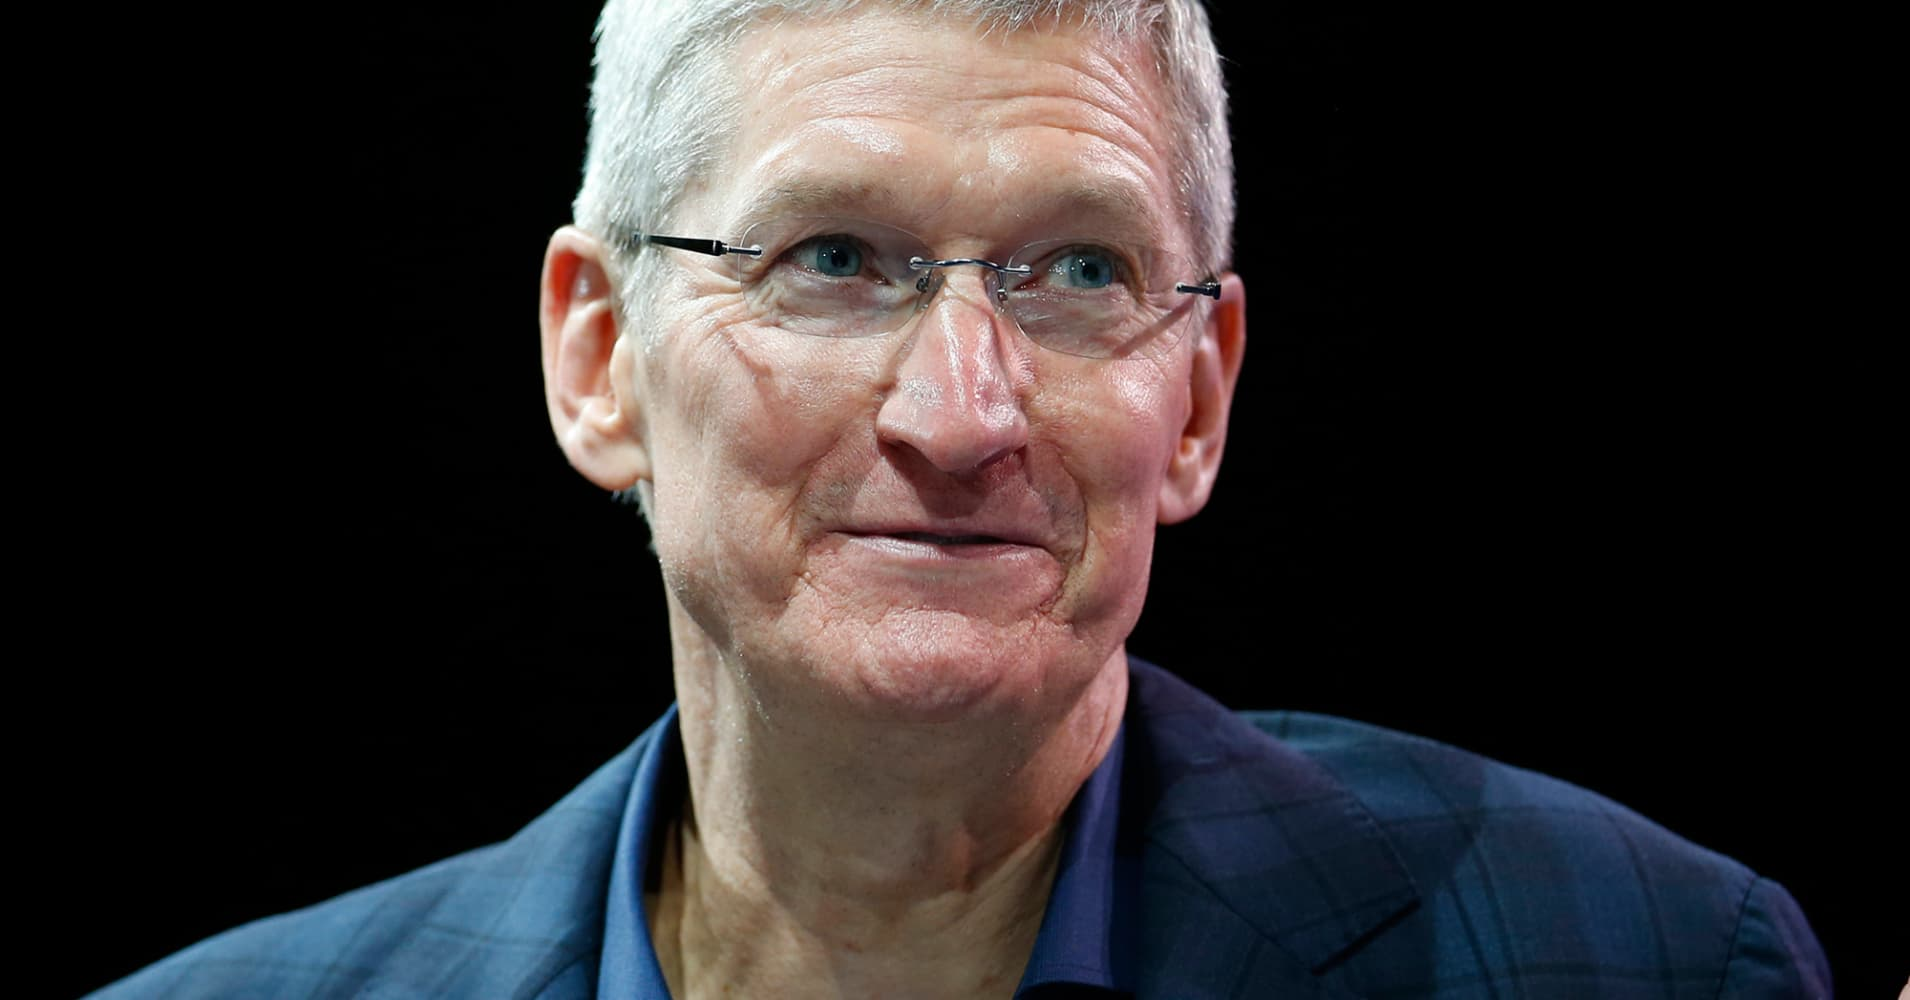 Apple CEO Tim Cook speaks at a conference in Laguna Beach, Calif., October 27, 2014.